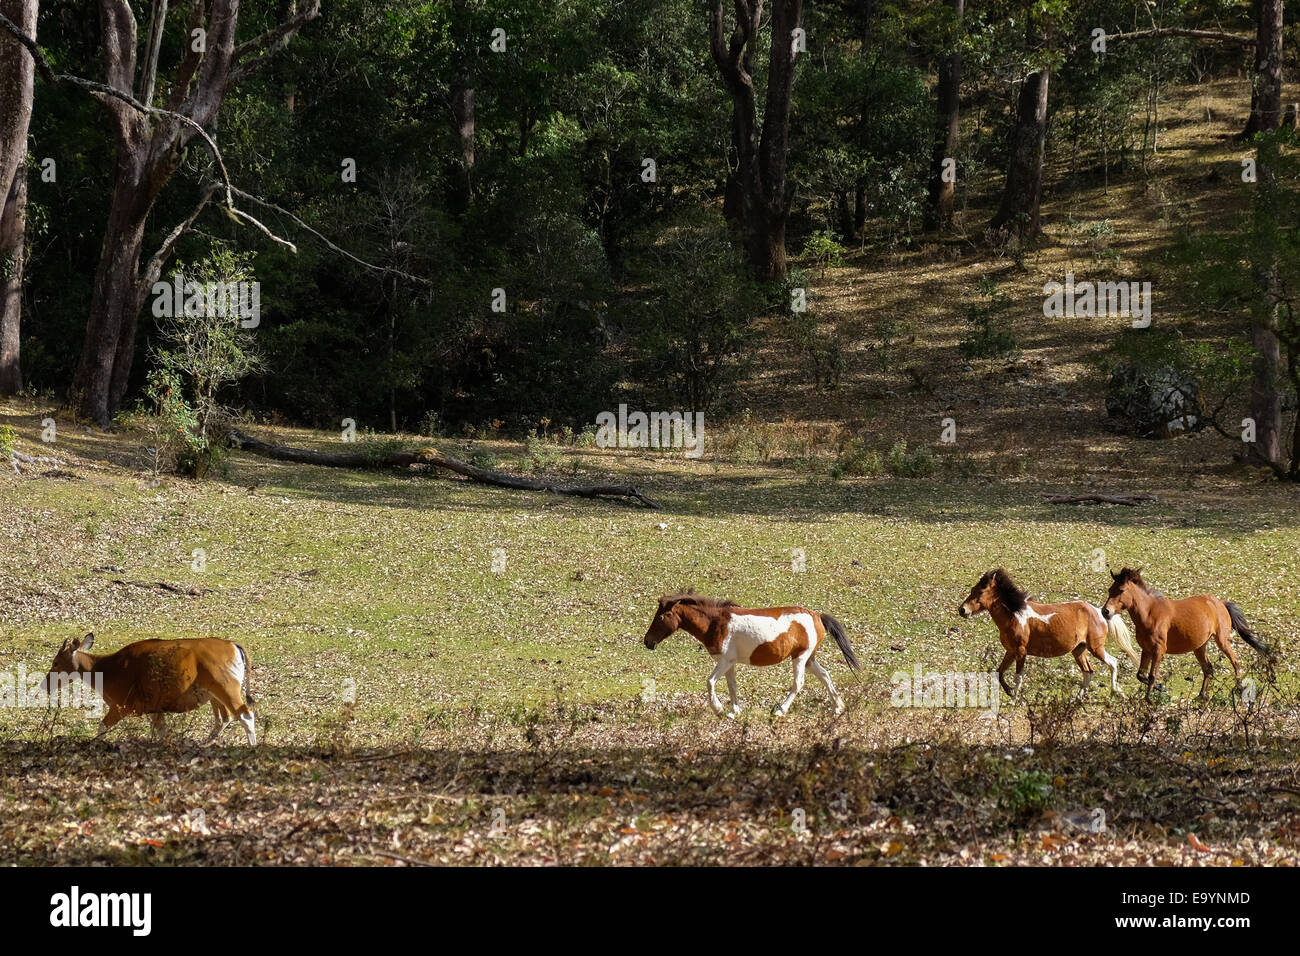 Timor horses and a Bali cow at savanna near Mount Mutis, West Timor, Indonesia. - Stock Image